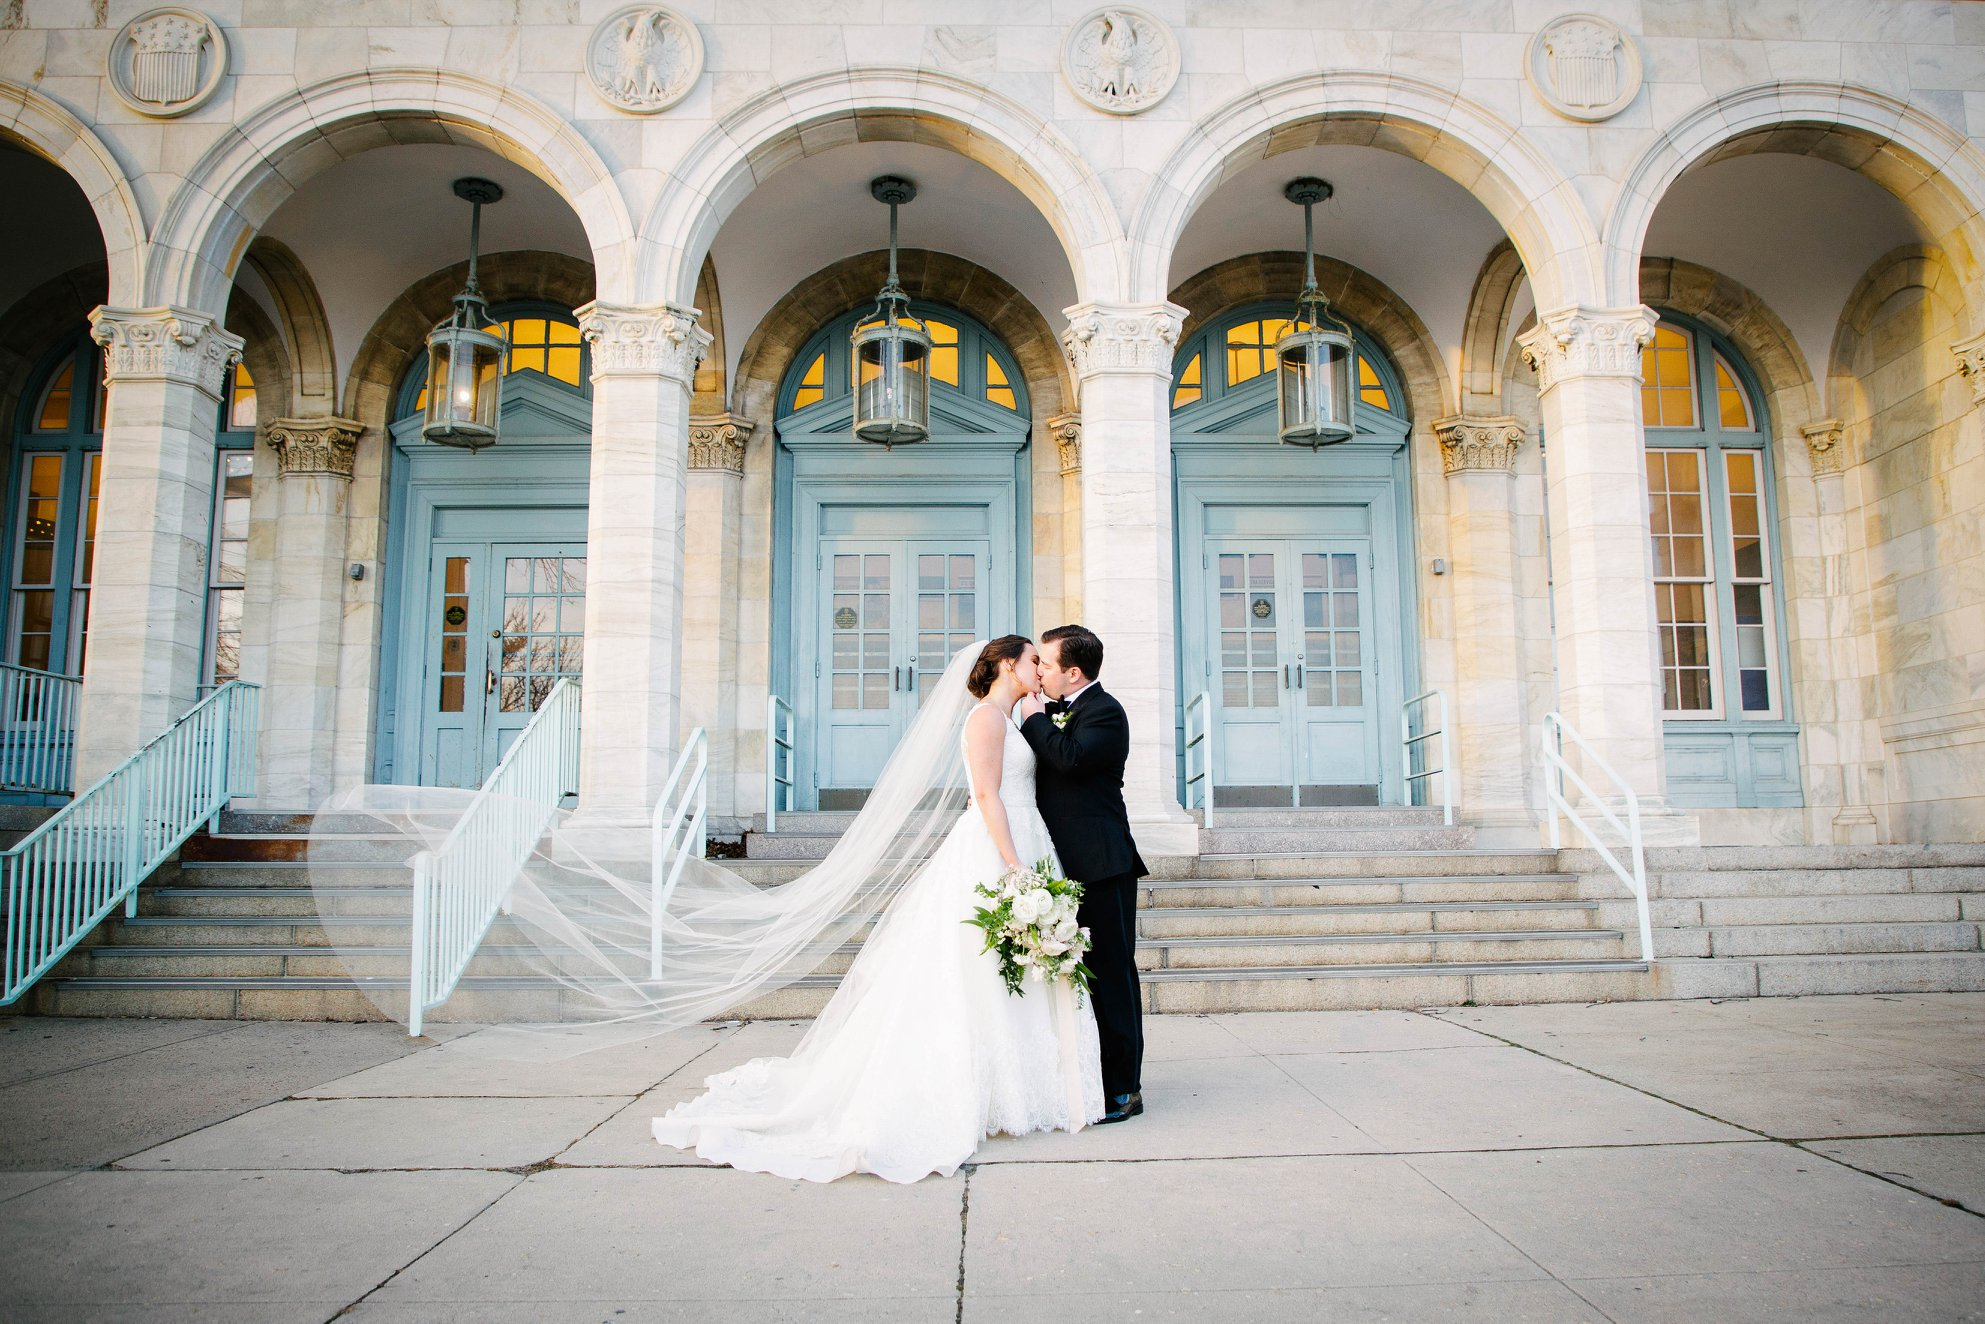 ALICIA + JOE - HEYN PHOTOGRAPHY